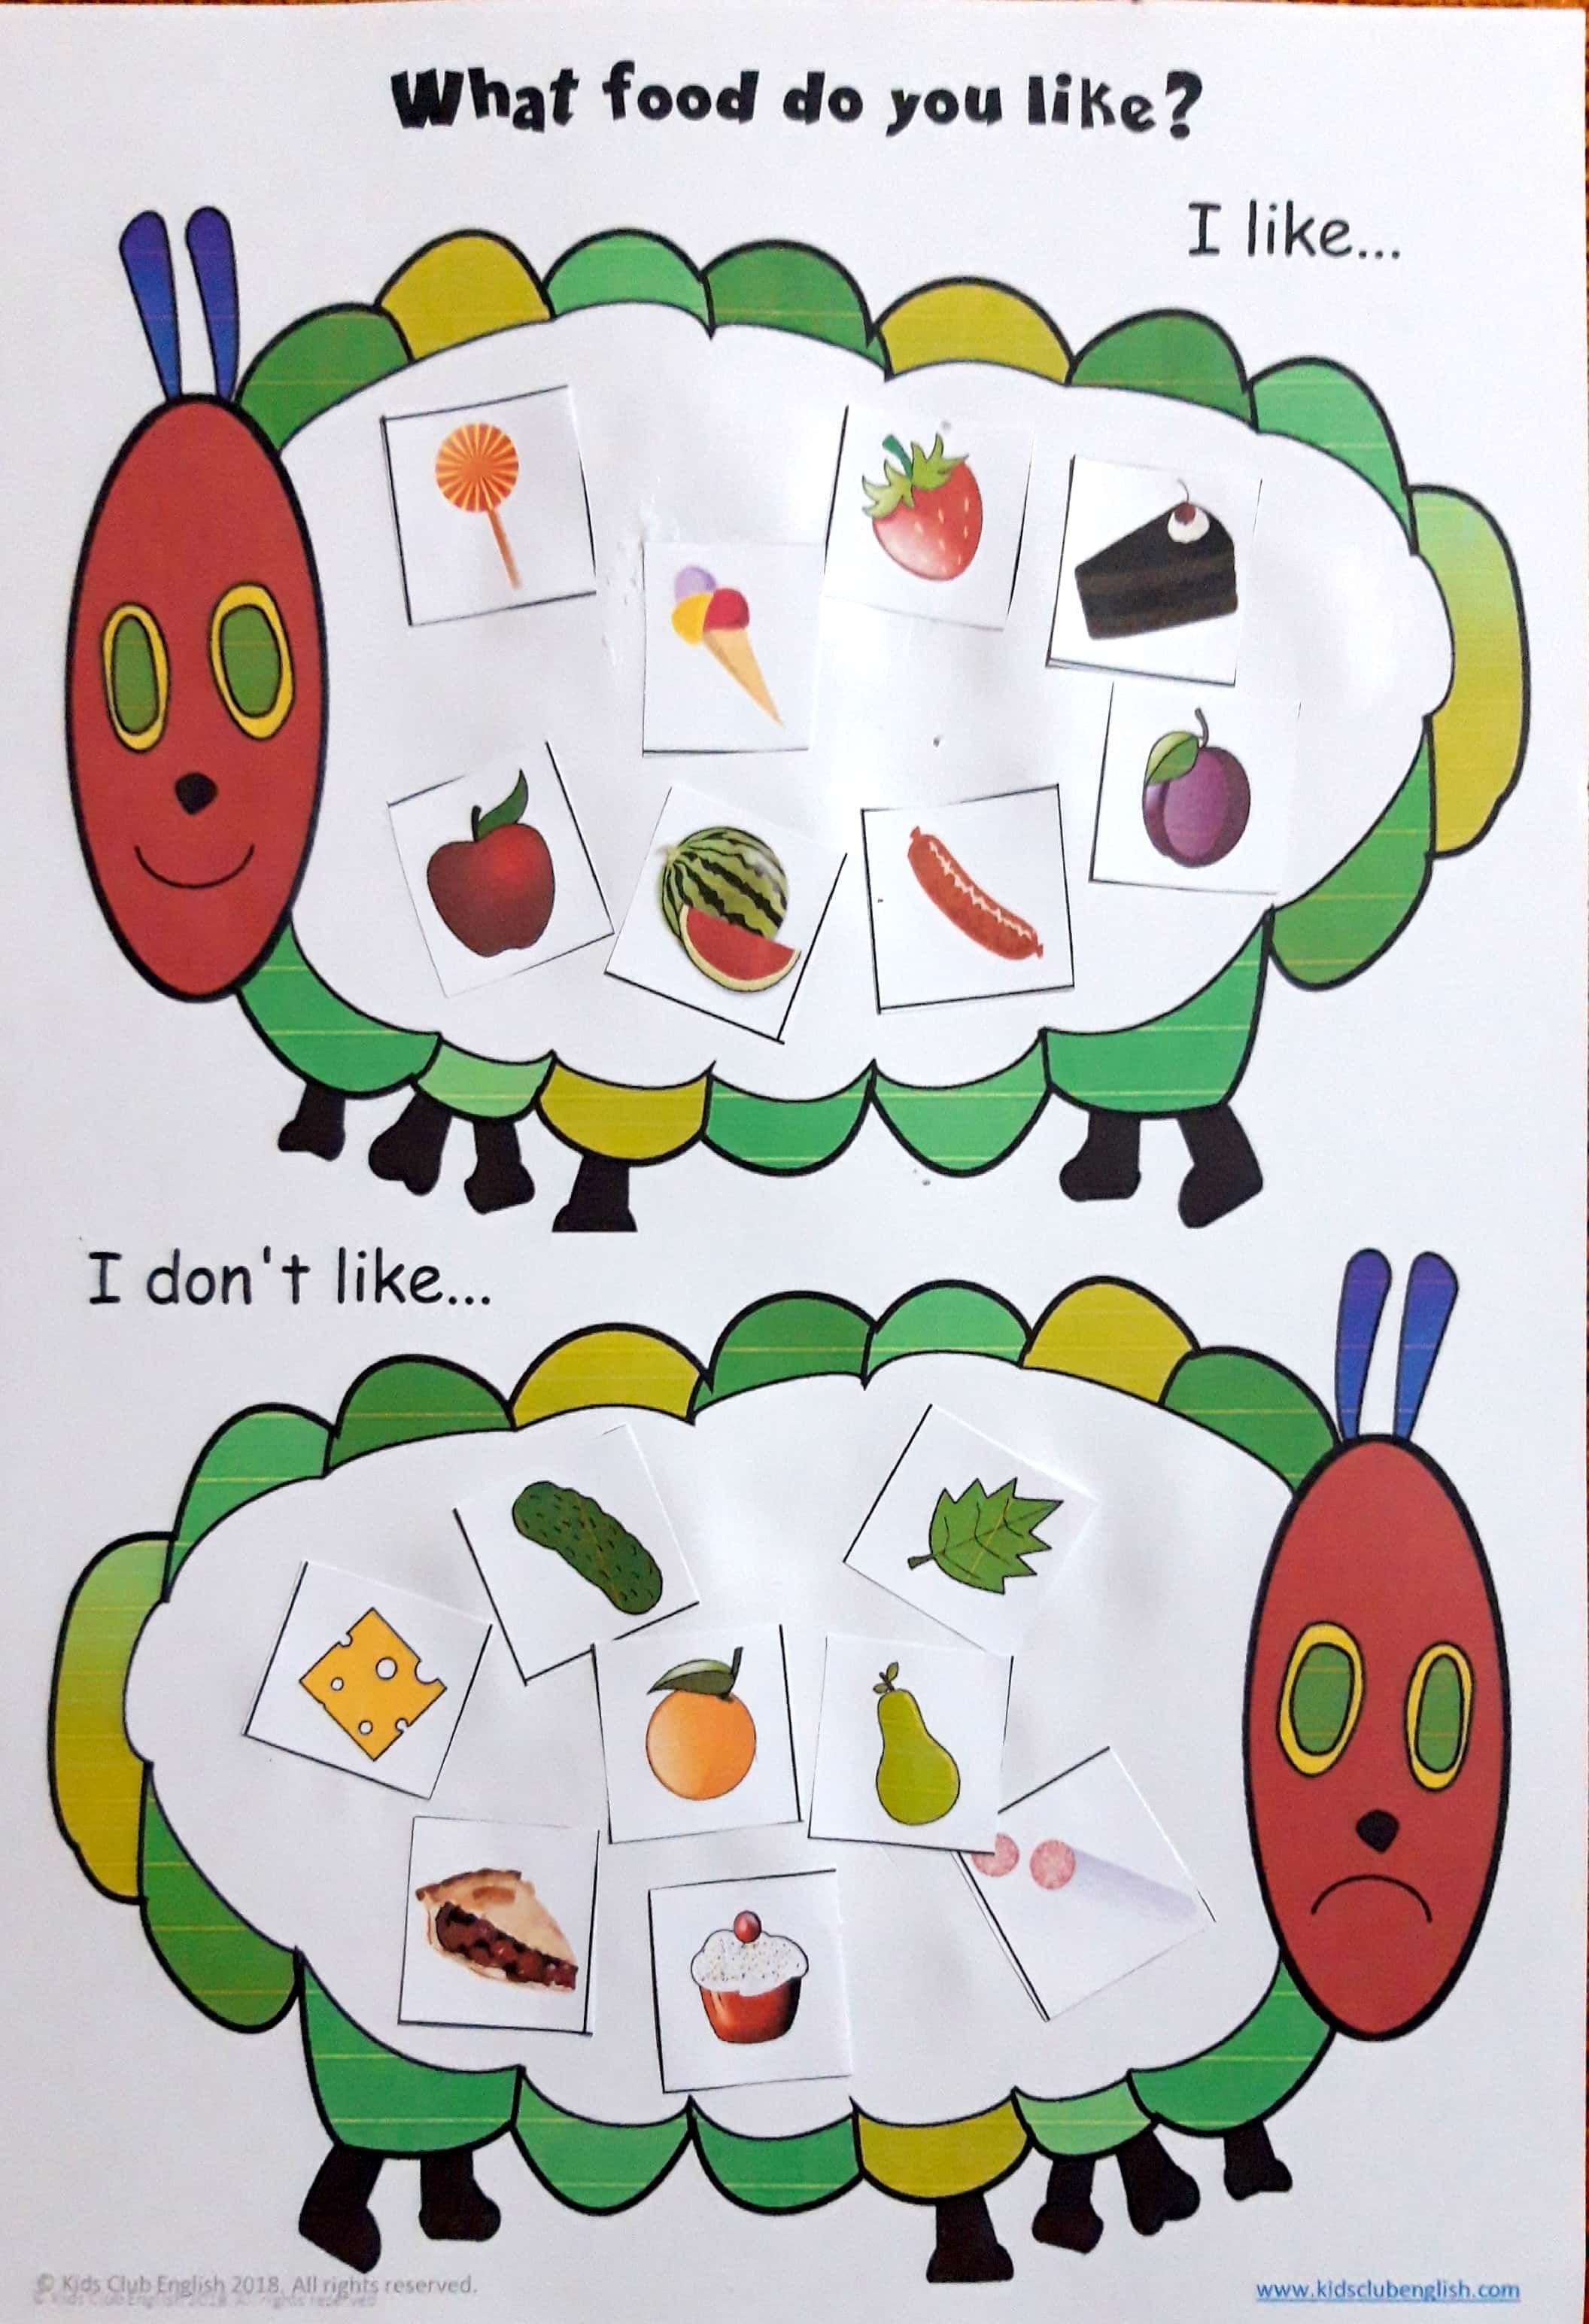 Kids Practise Expressing Food Preferences While Learning